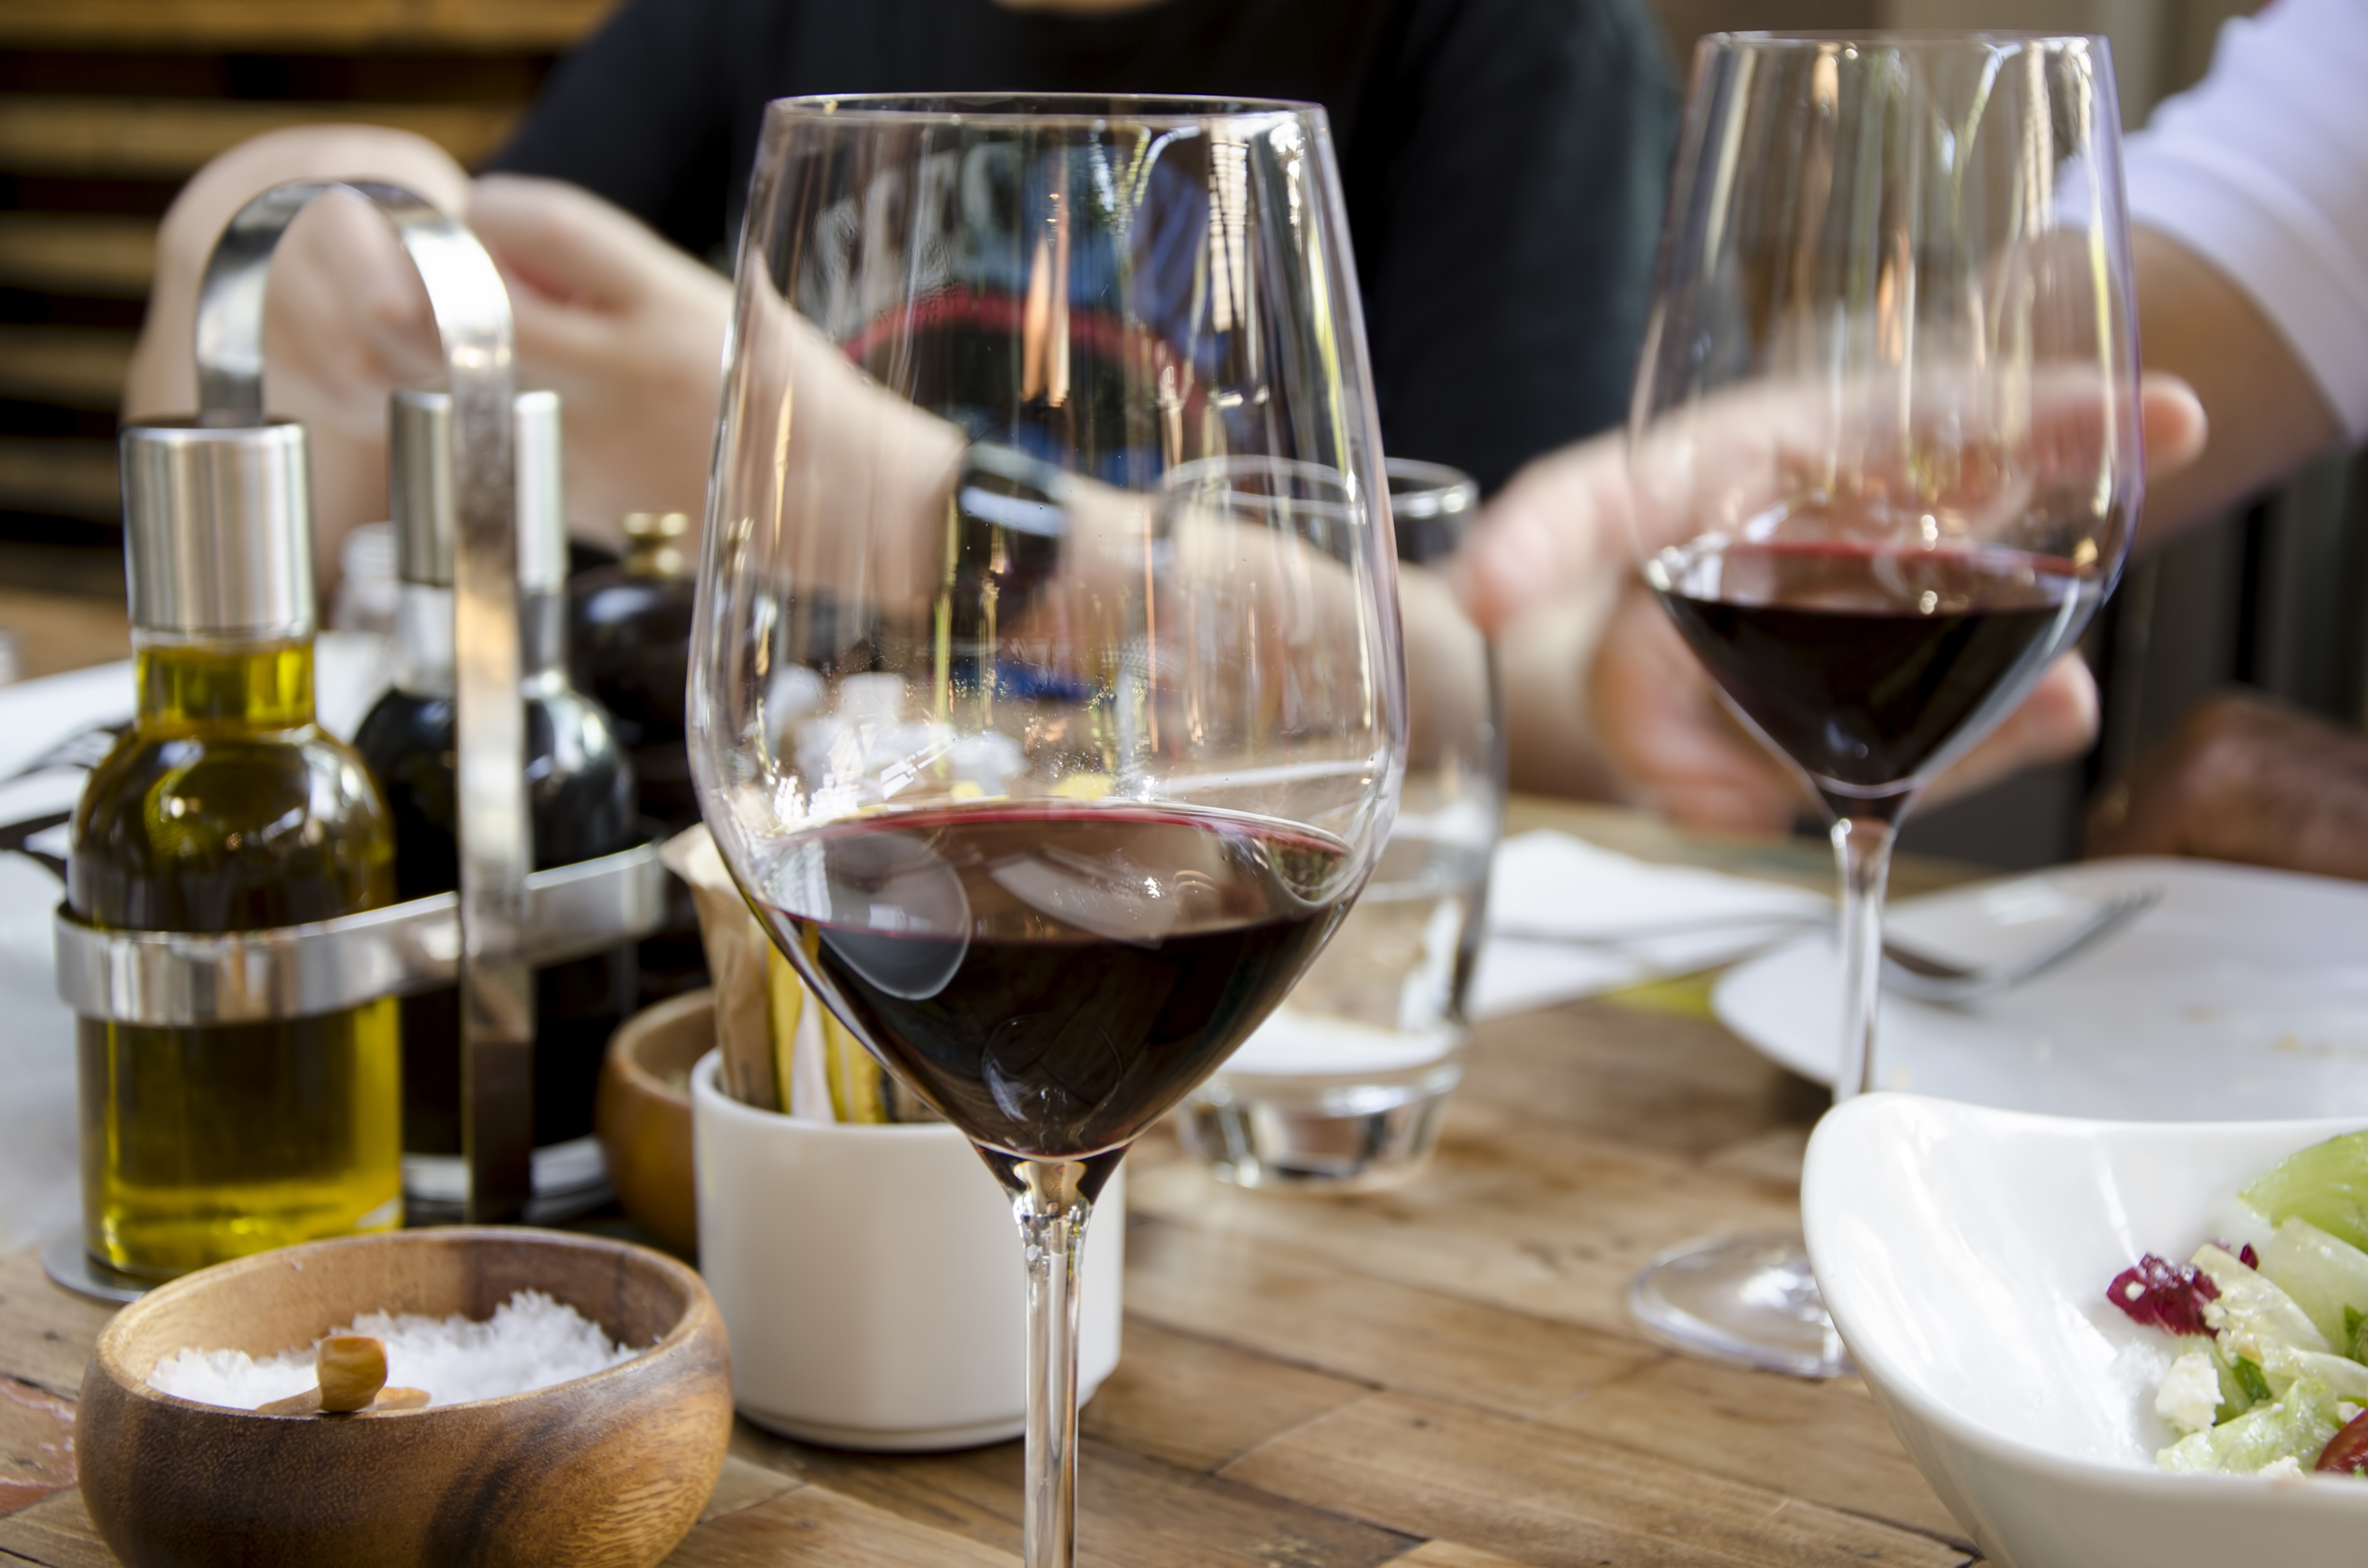 A Glass Of Wine A Day May Help Control Type 2 Diabetes : The Salt : NPR